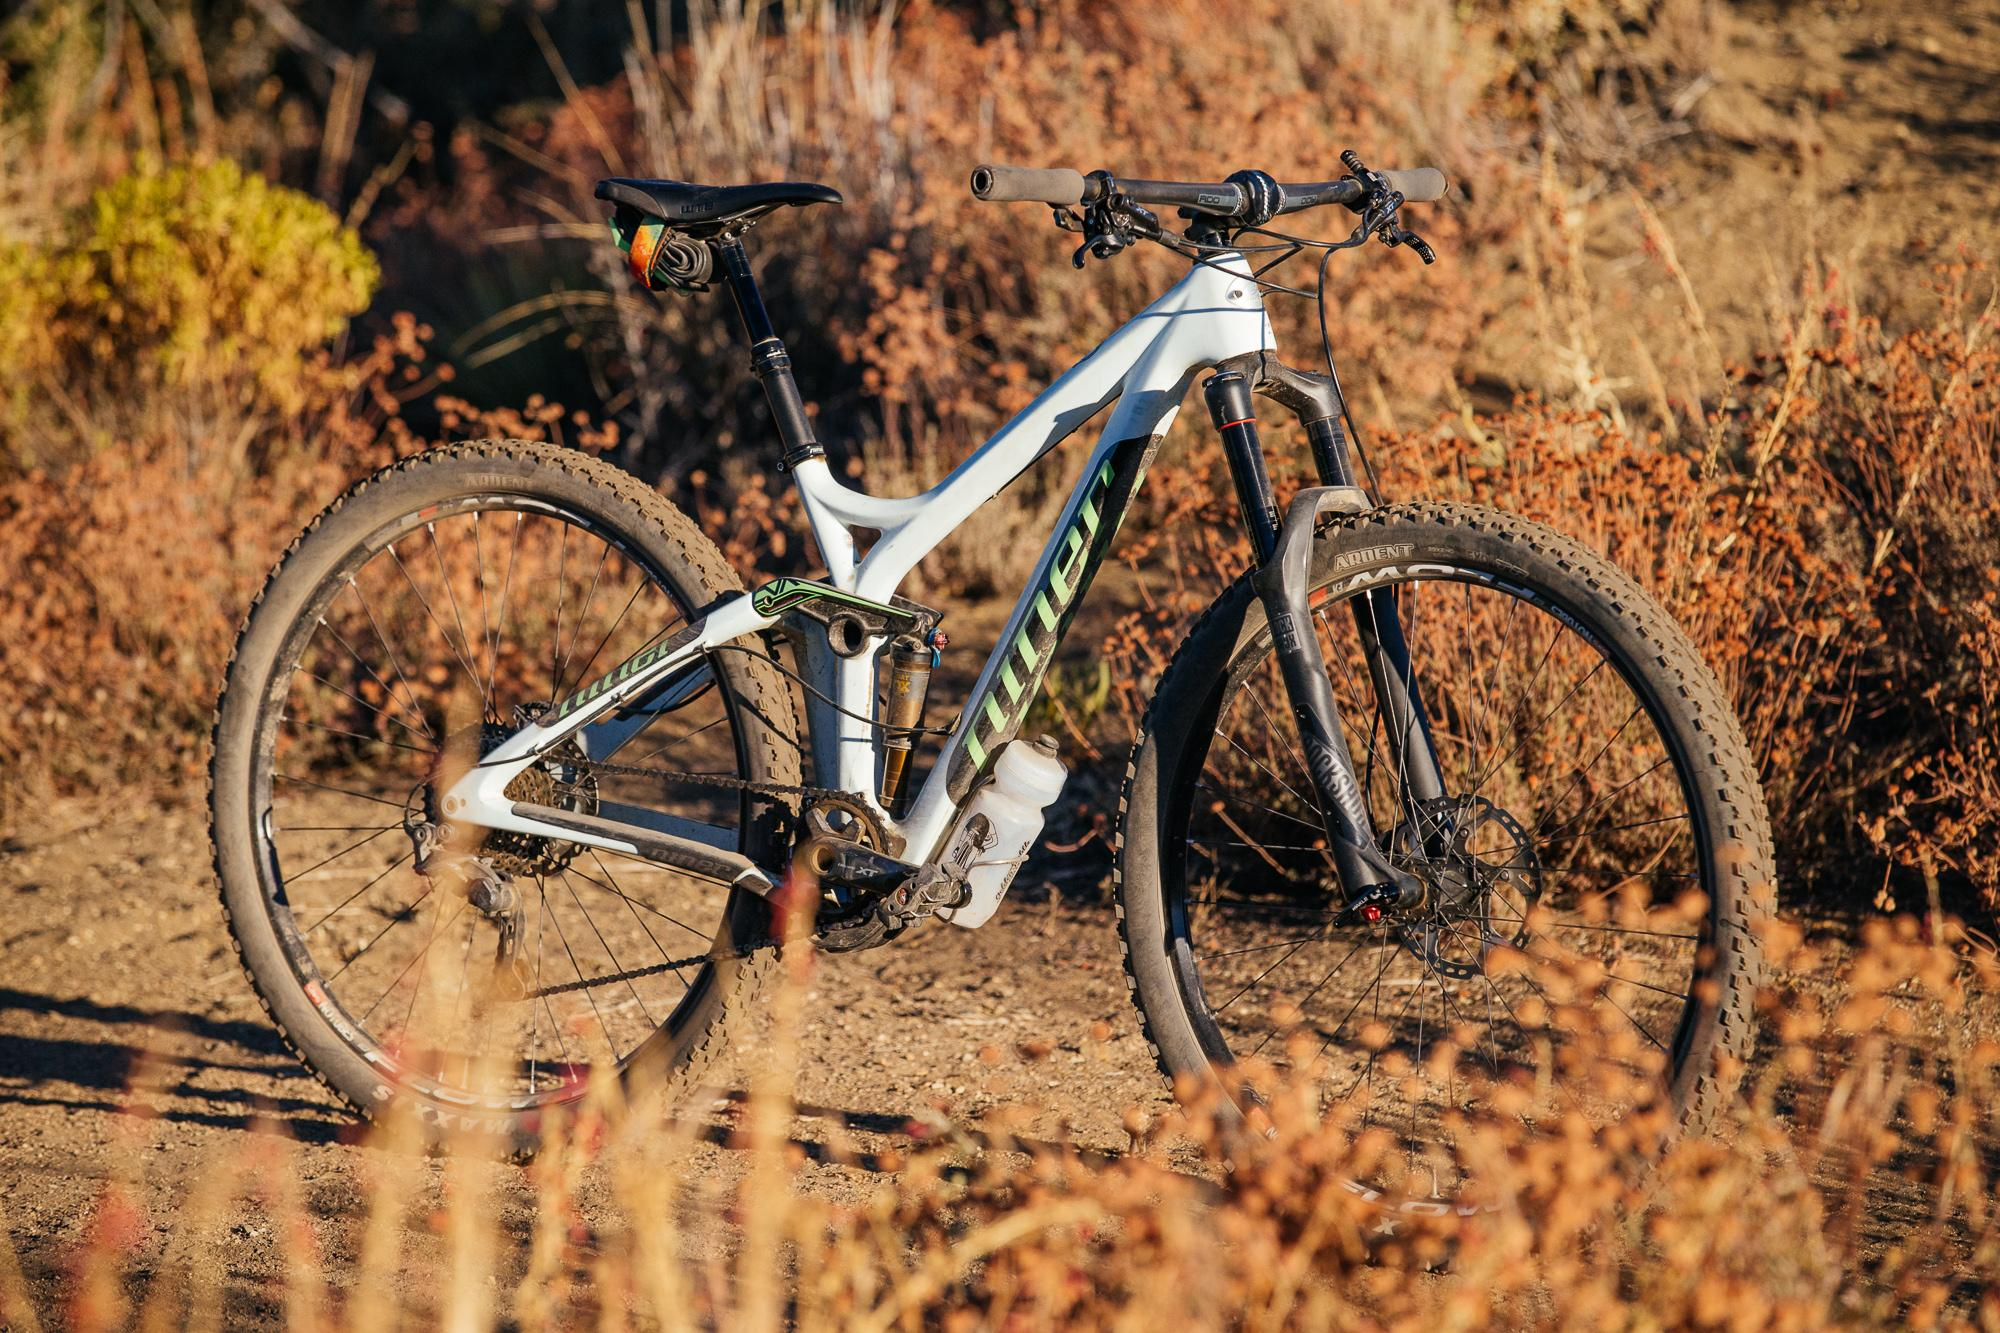 Jump Around with Kyle and His Niner RIP 9 RDO